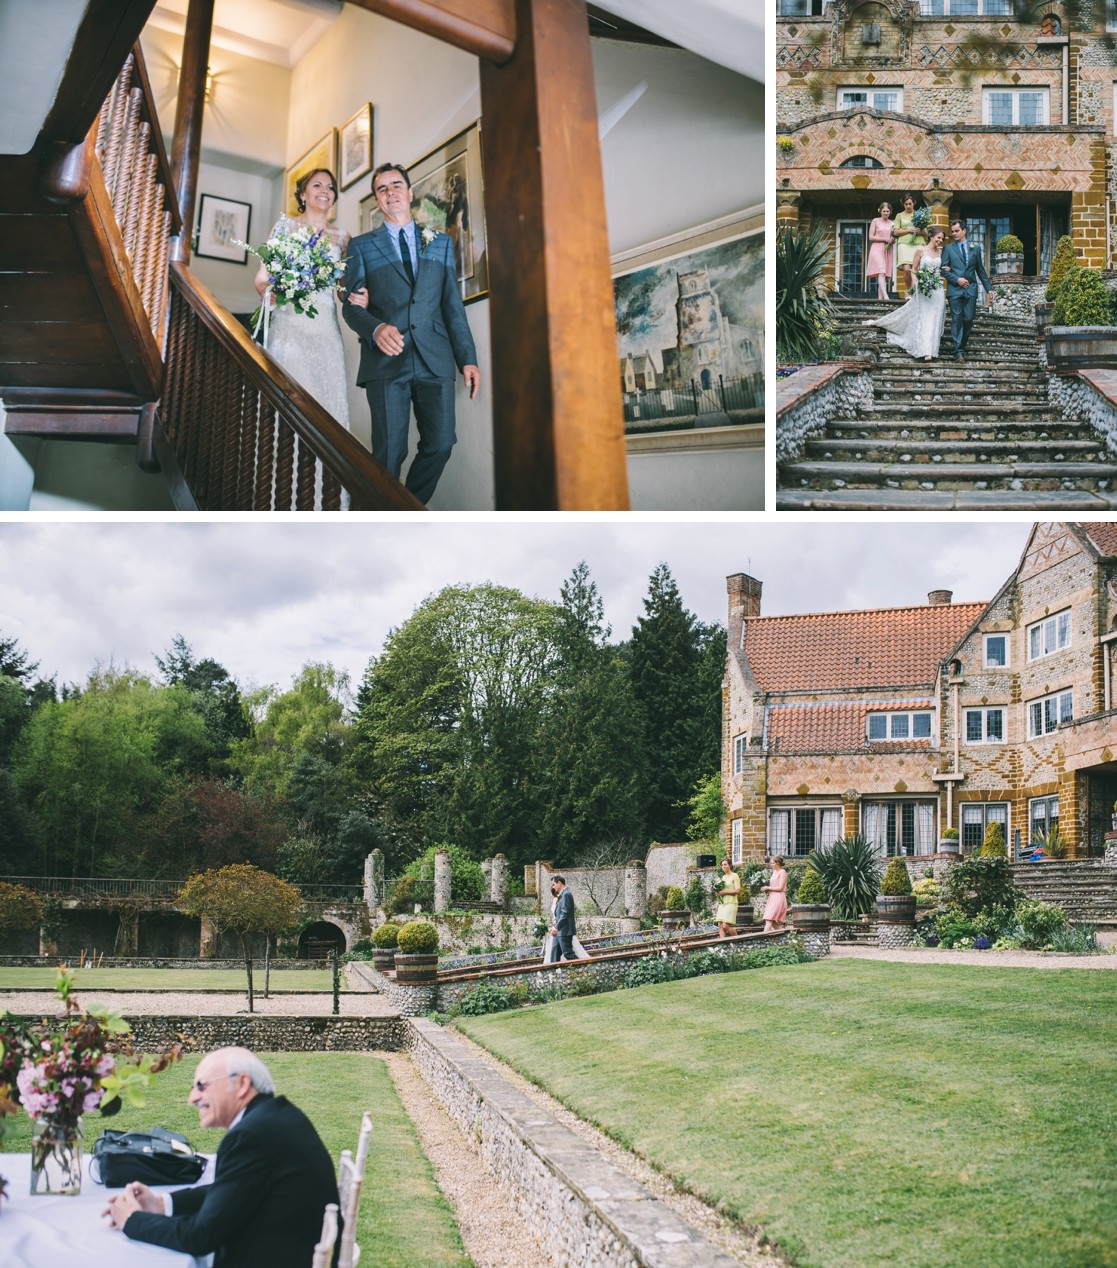 Paul-And-Hannah-Voewood-House-Wedding-By-Norfolk-And-Suffolk-Wedding-Photographer-James-Powell-Photography_0093.jpg